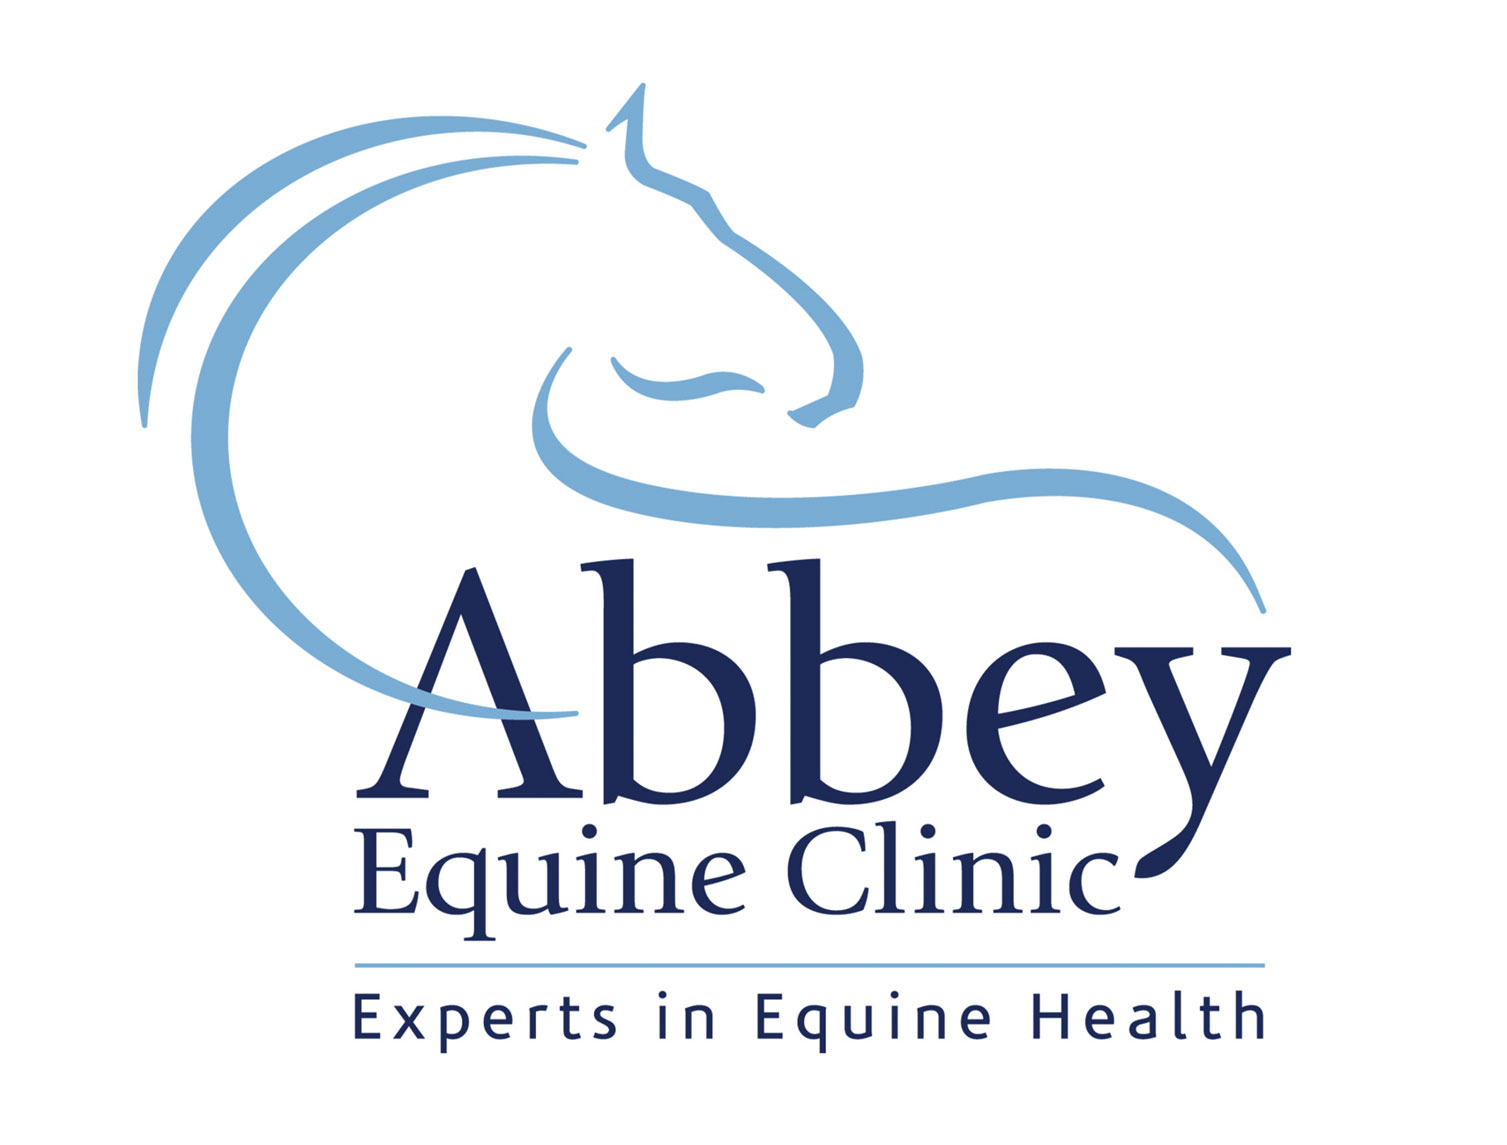 Abbey Equine Clinic's New Logo